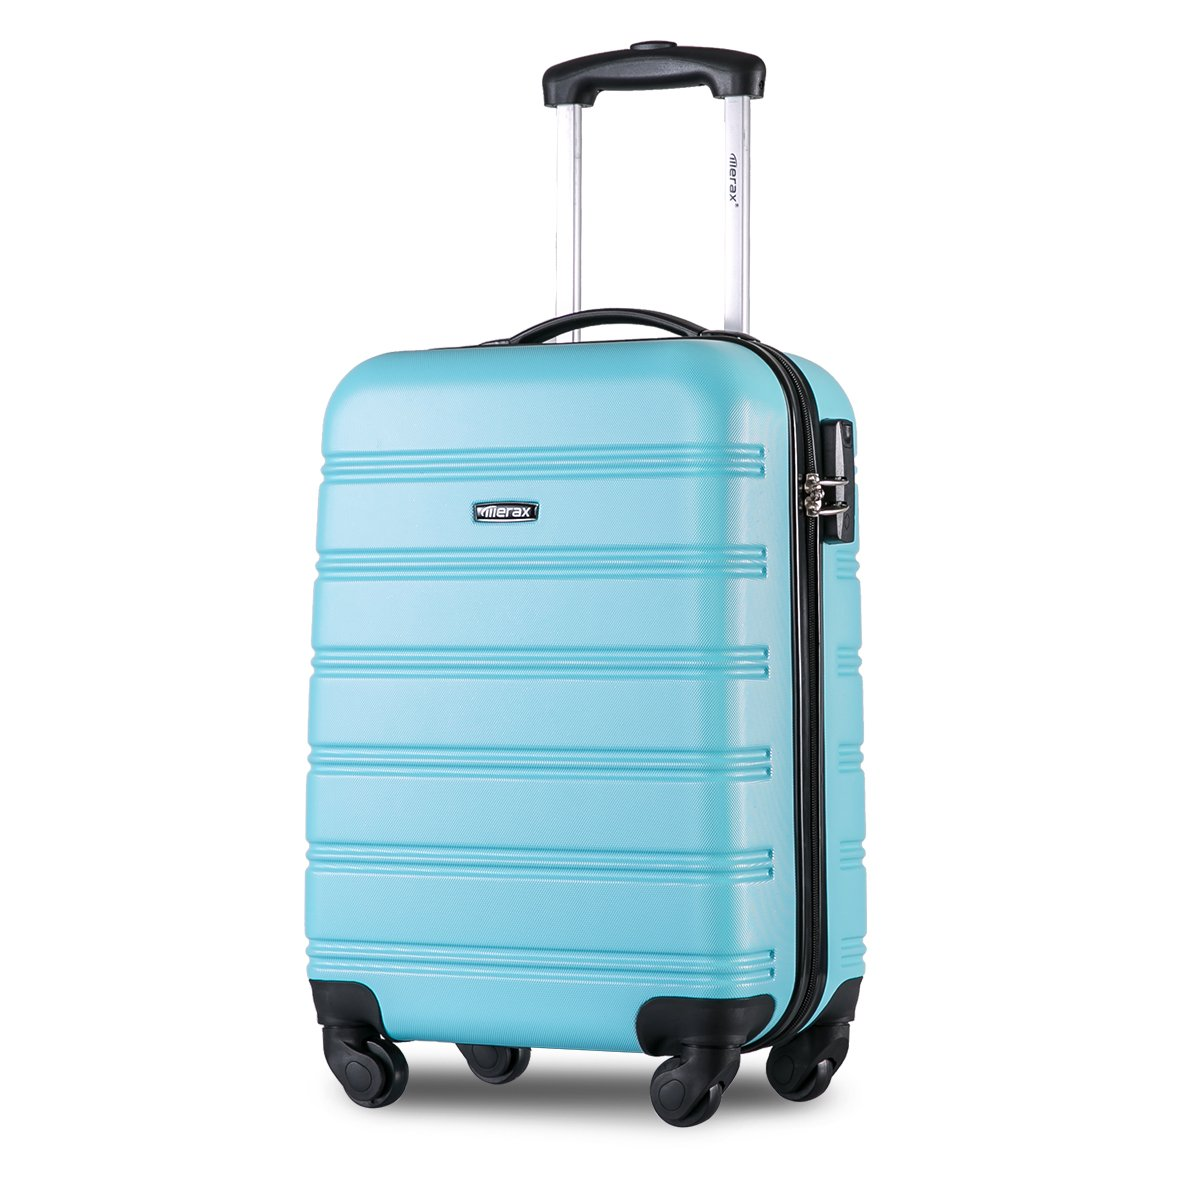 Merax ® Super Lightweight ABS Hard Shell Travel Carry On Cabin Hand Luggage Suitcase with 4 Wheels, Approved for Ryanair, Easyjet, British Airways, Virgin Atlantic, Flybe and Many More (Sky Blue)